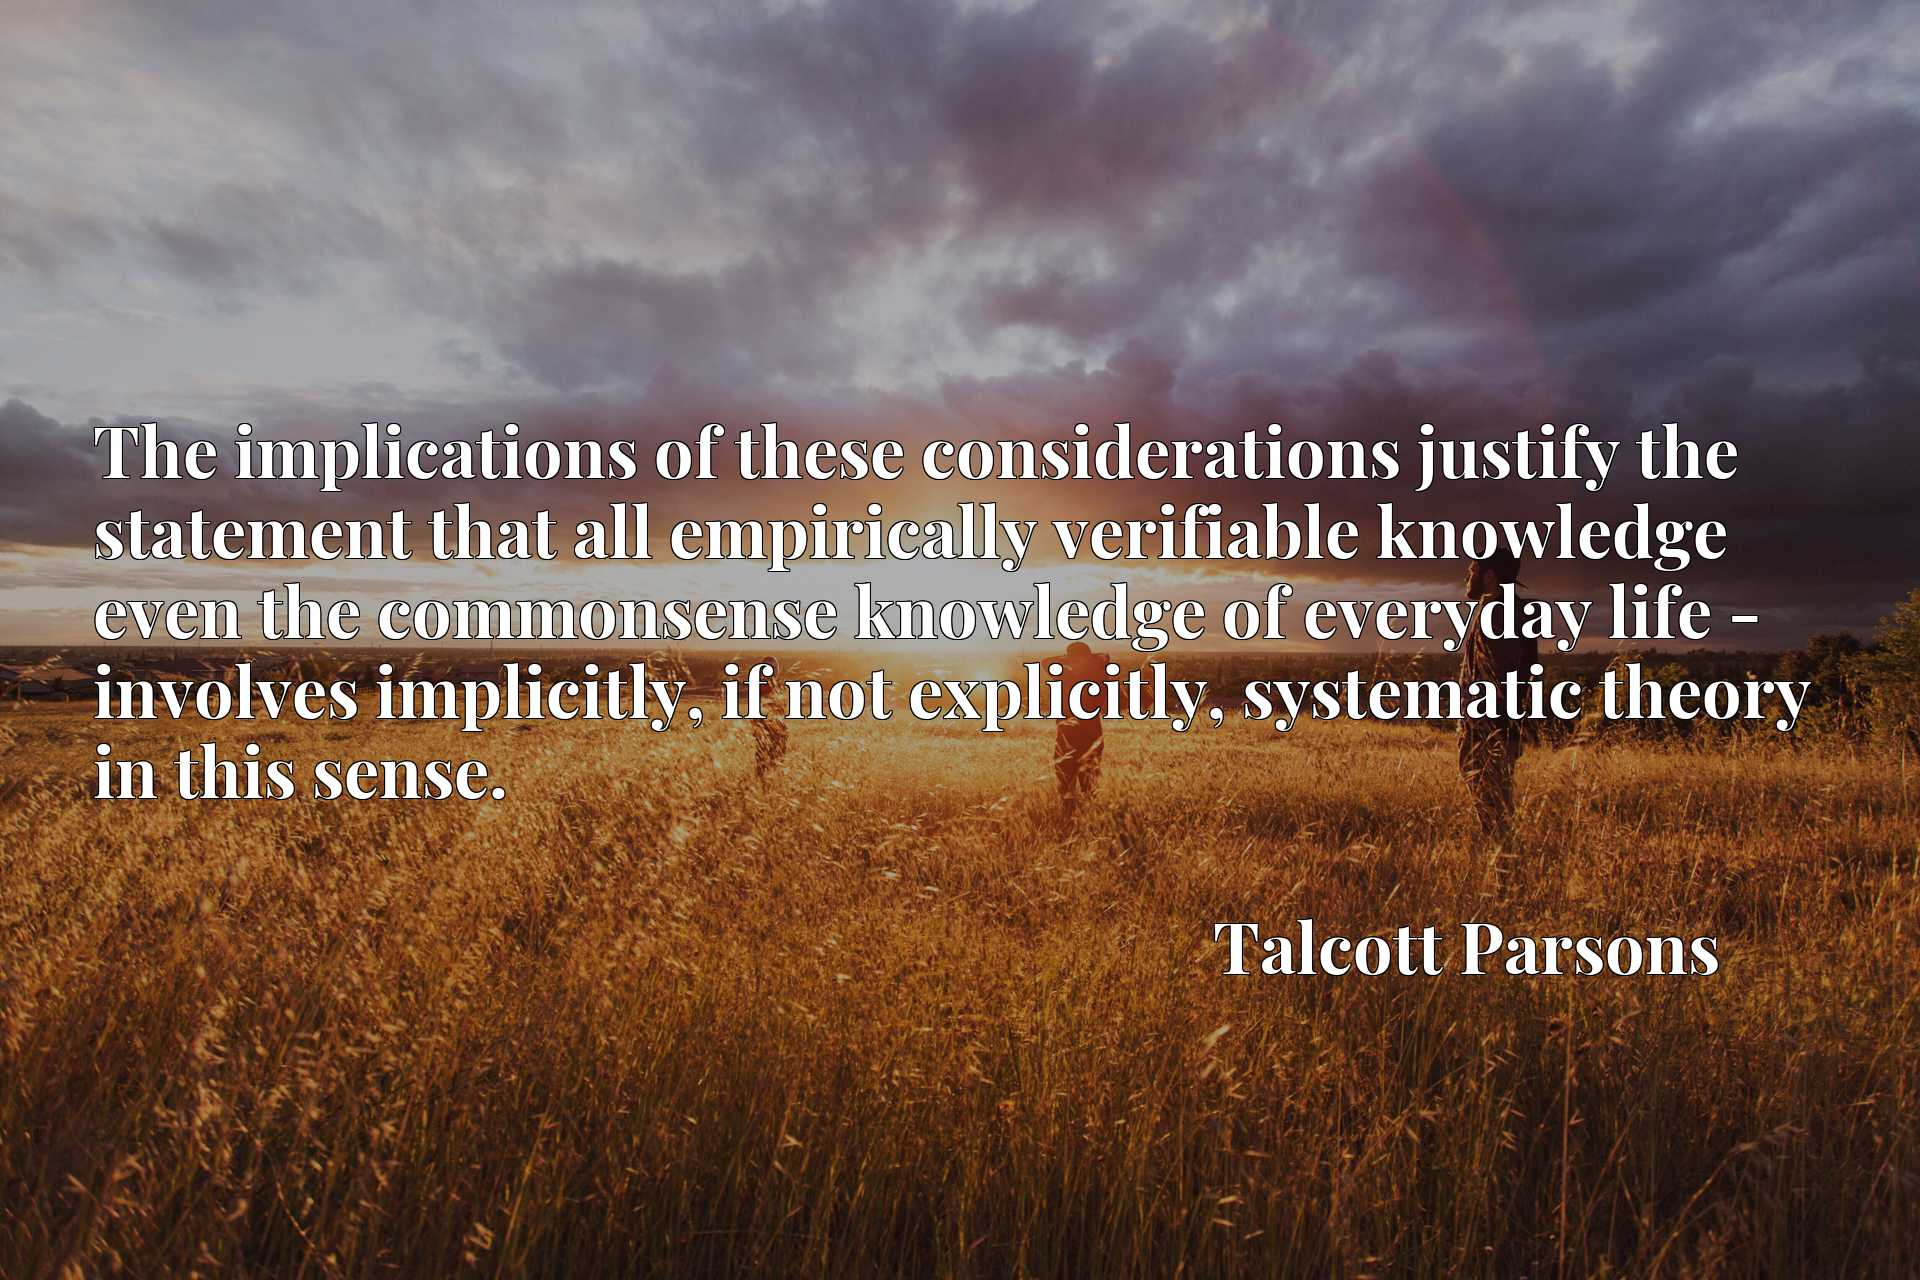 Quote Picture :The implications of these considerations justify the statement that all empirically verifiable knowledge even the commonsense knowledge of everyday life - involves implicitly, if not explicitly, systematic theory in this sense.